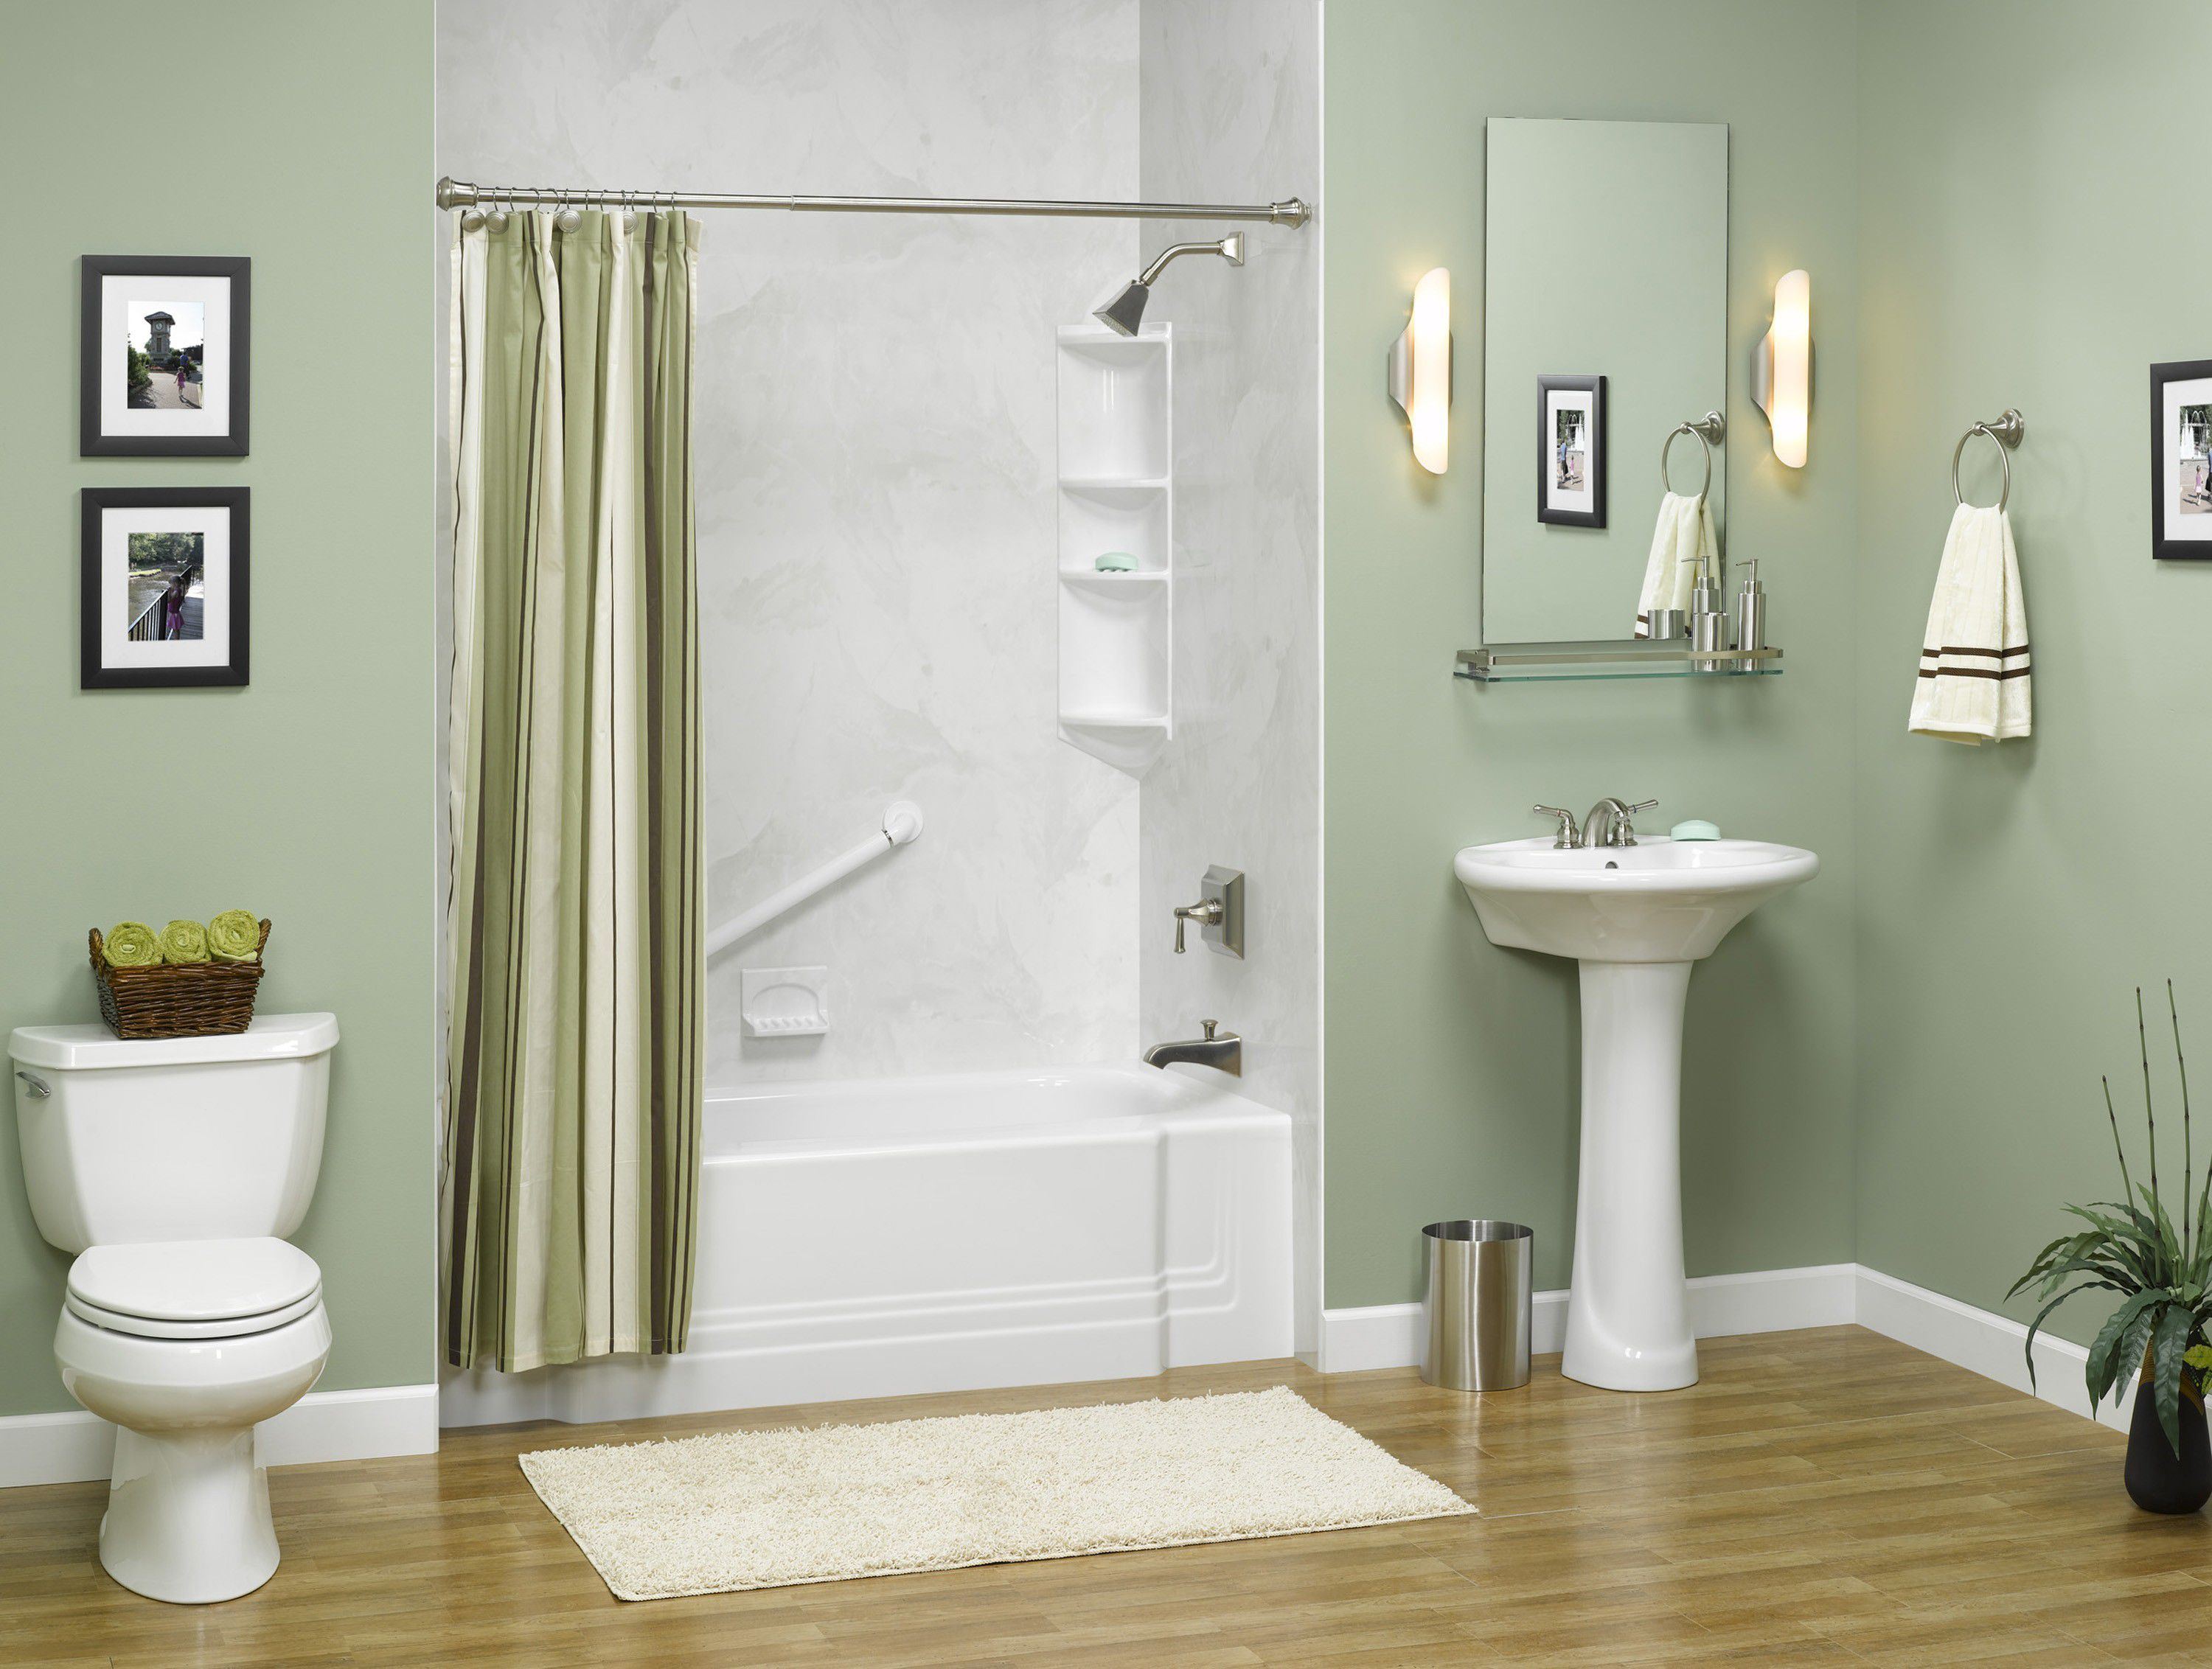 Add White Pedestal Sink And Bathtub For Simple Room Using Grey Bathroom  Paint Ideas With Hardwood